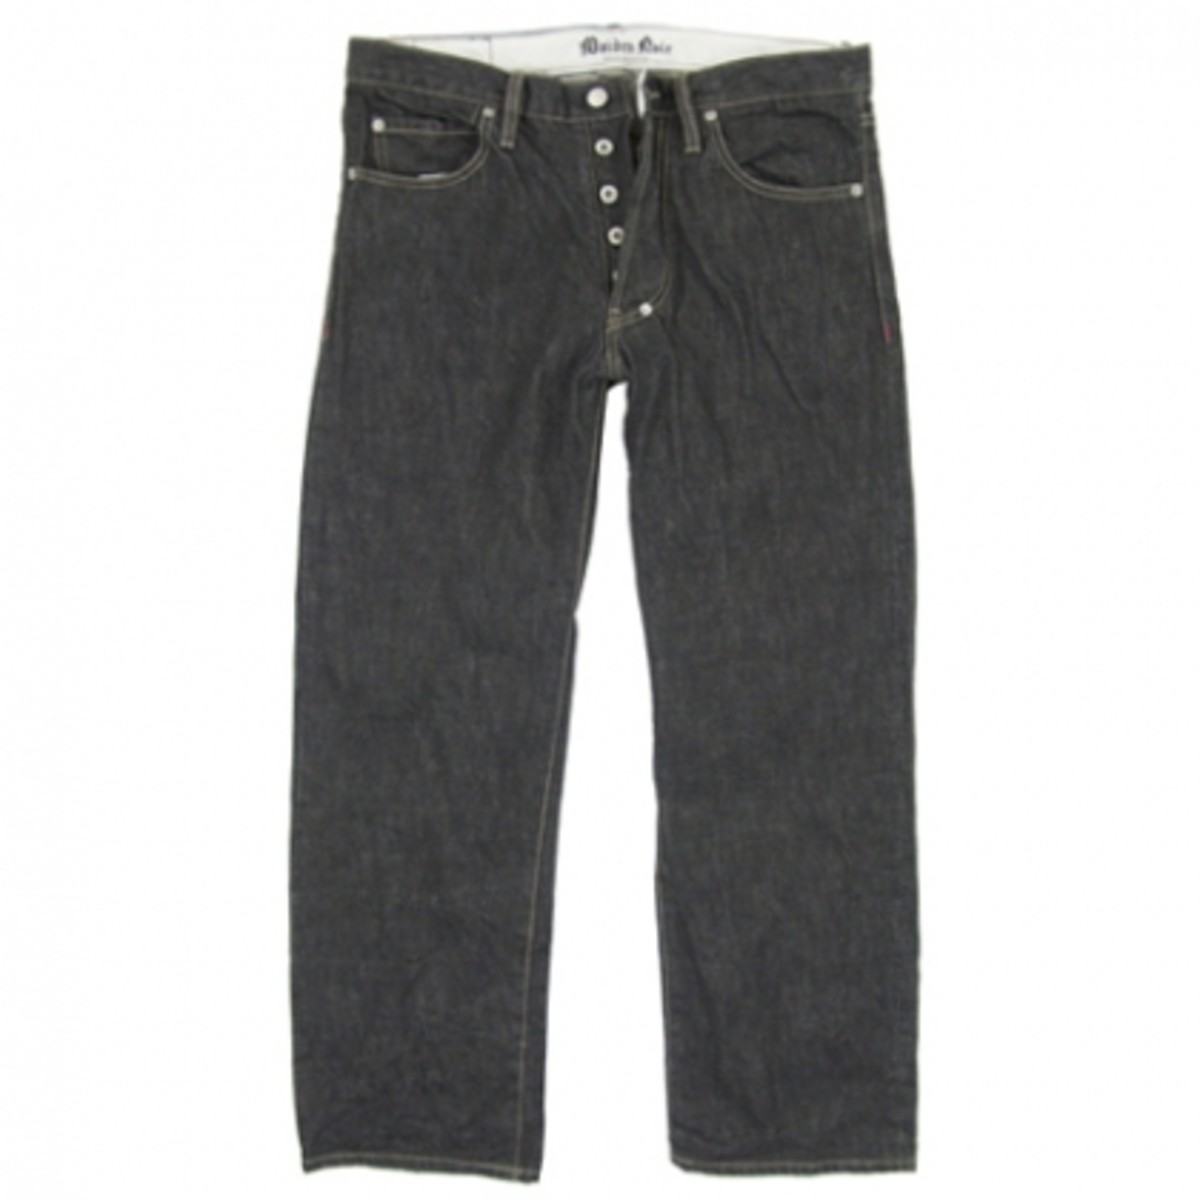 maiden-noir-denims-01